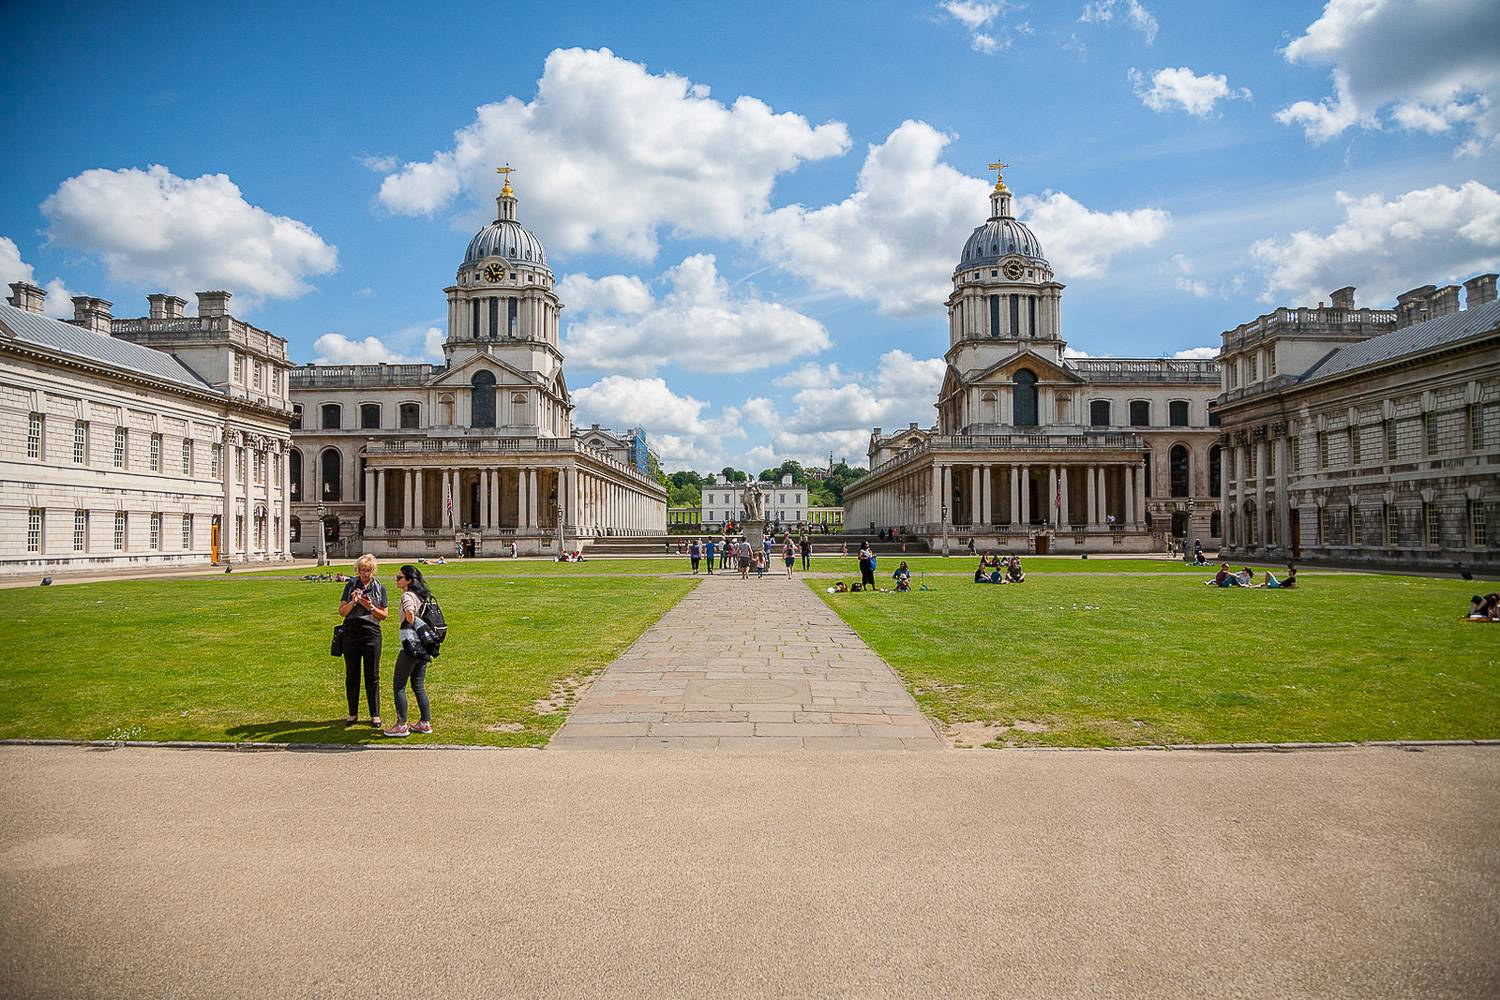 Image of the courtyard of the Old Royal Naval College in London on a sunny day.